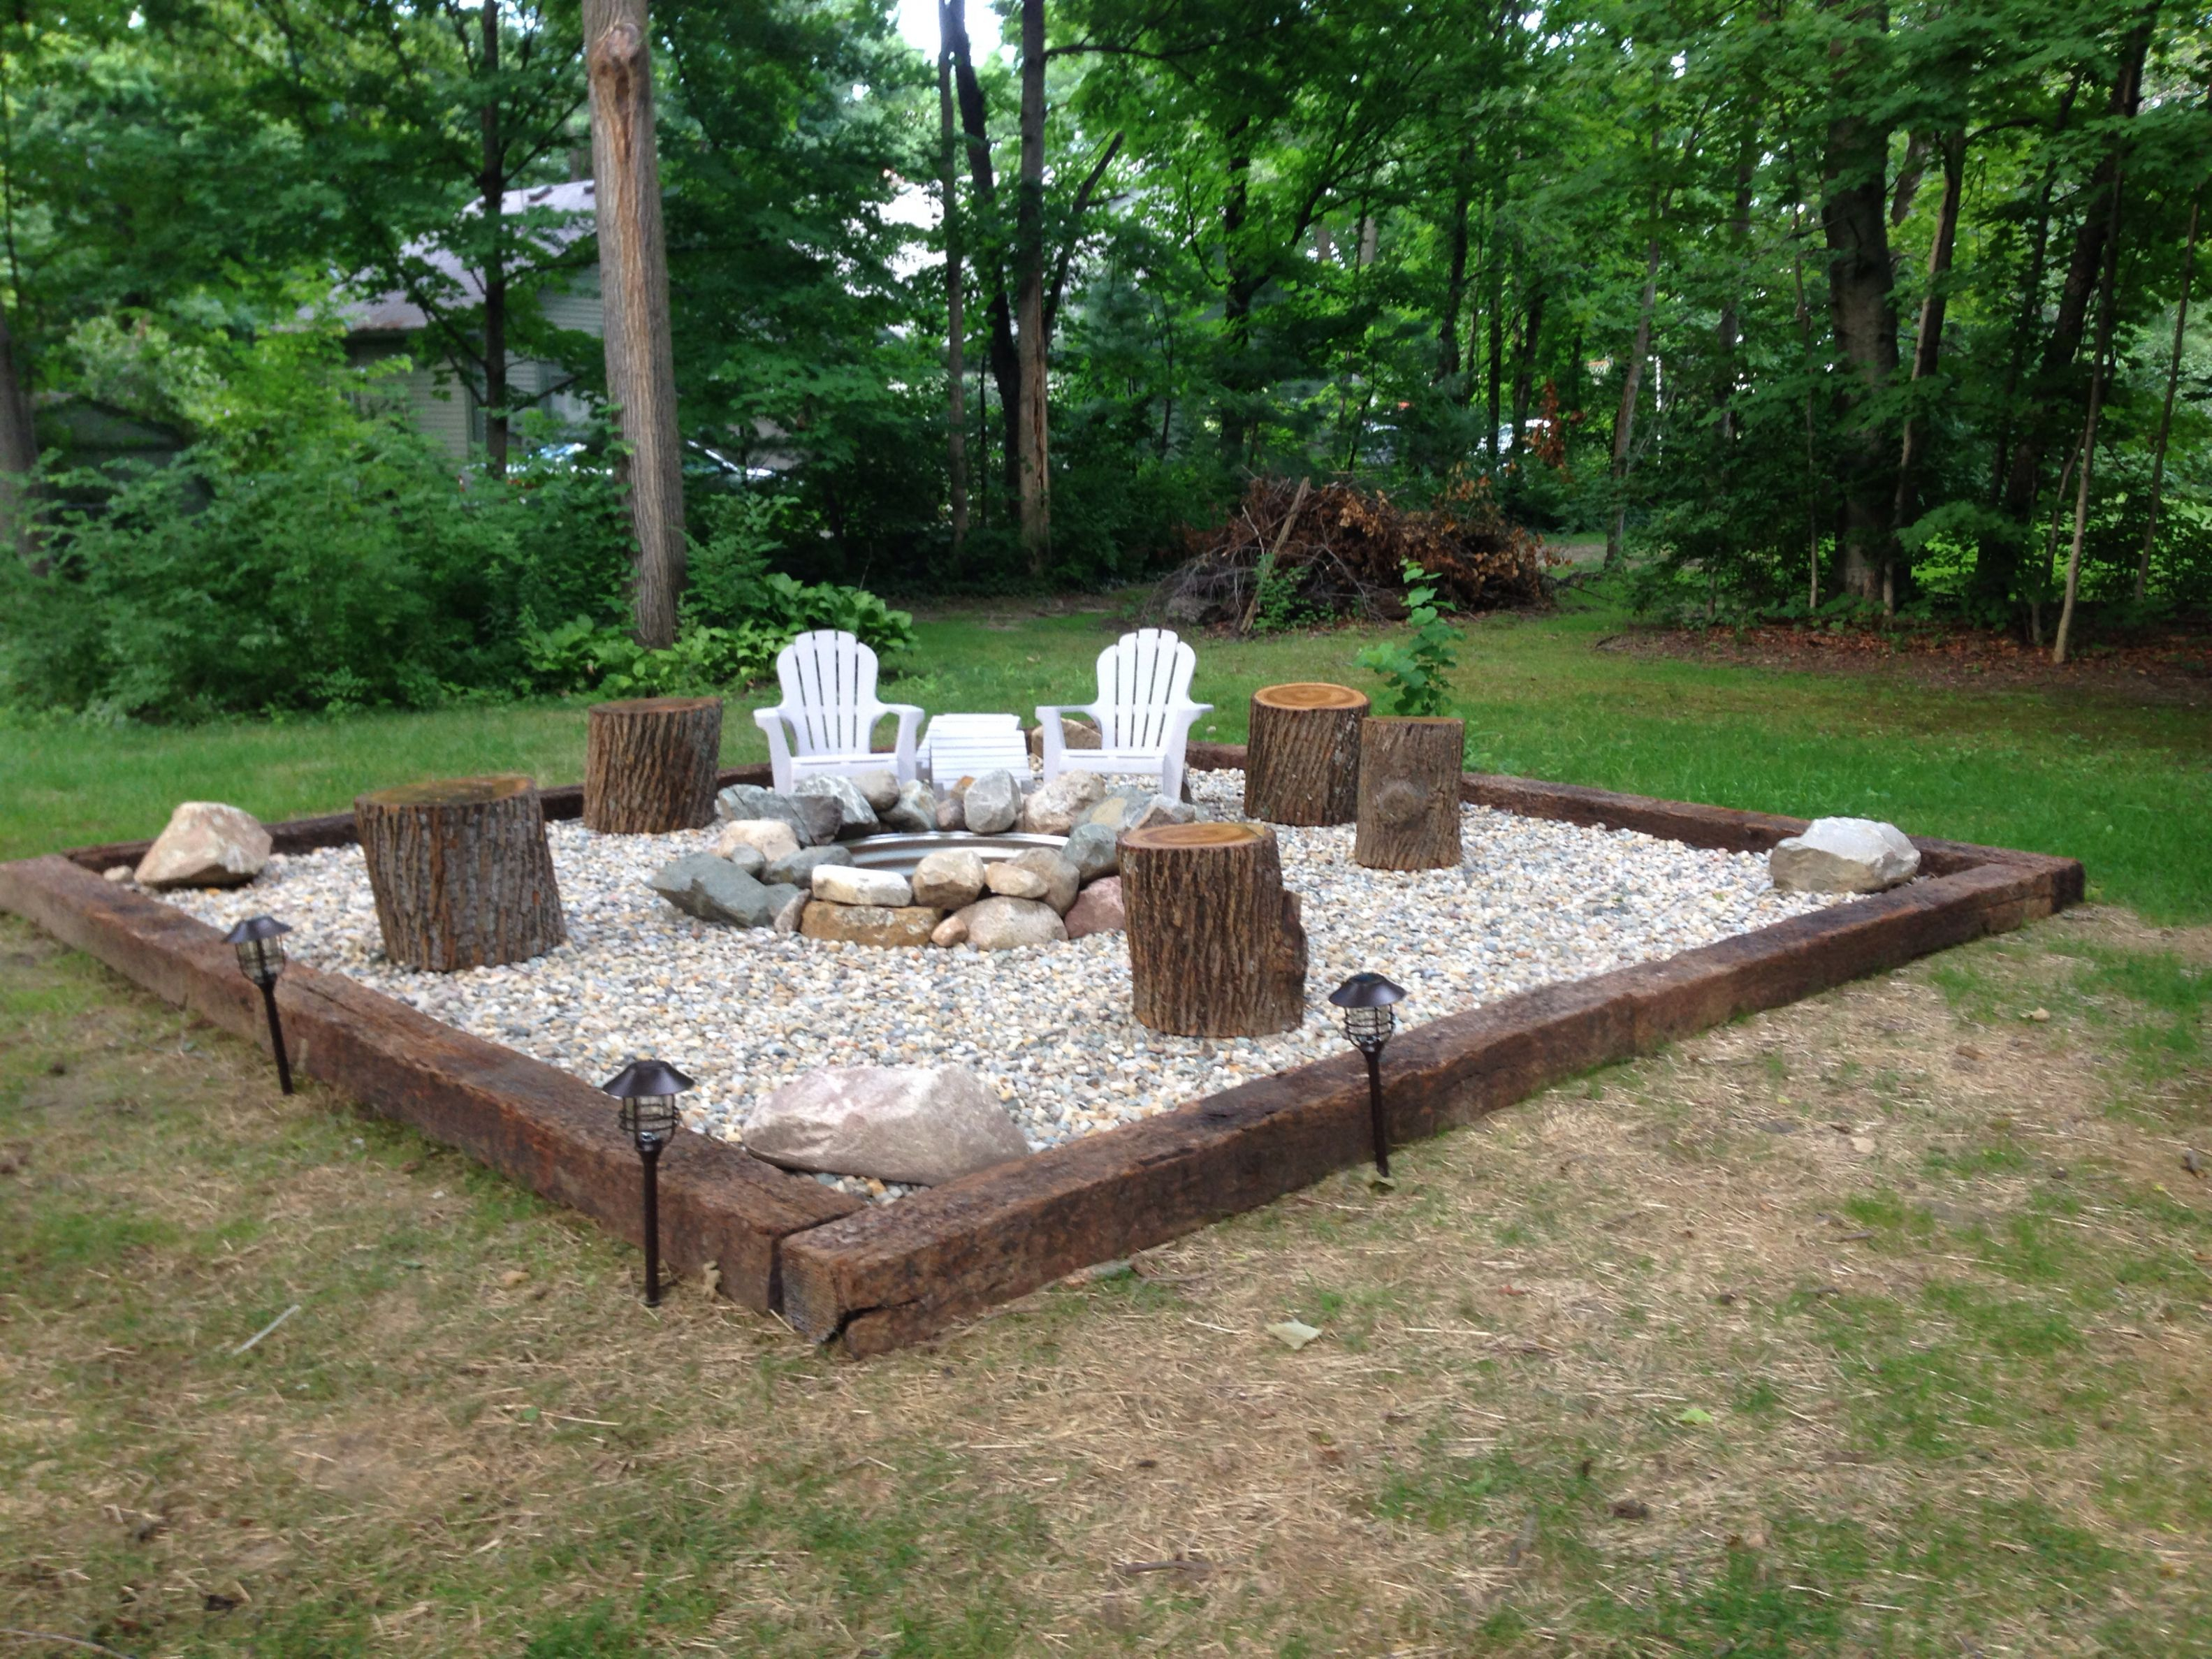 30 Best Backyard Fire Pit Area Inspirations For Your Cozy And Rustic throughout size 3166 X 2375